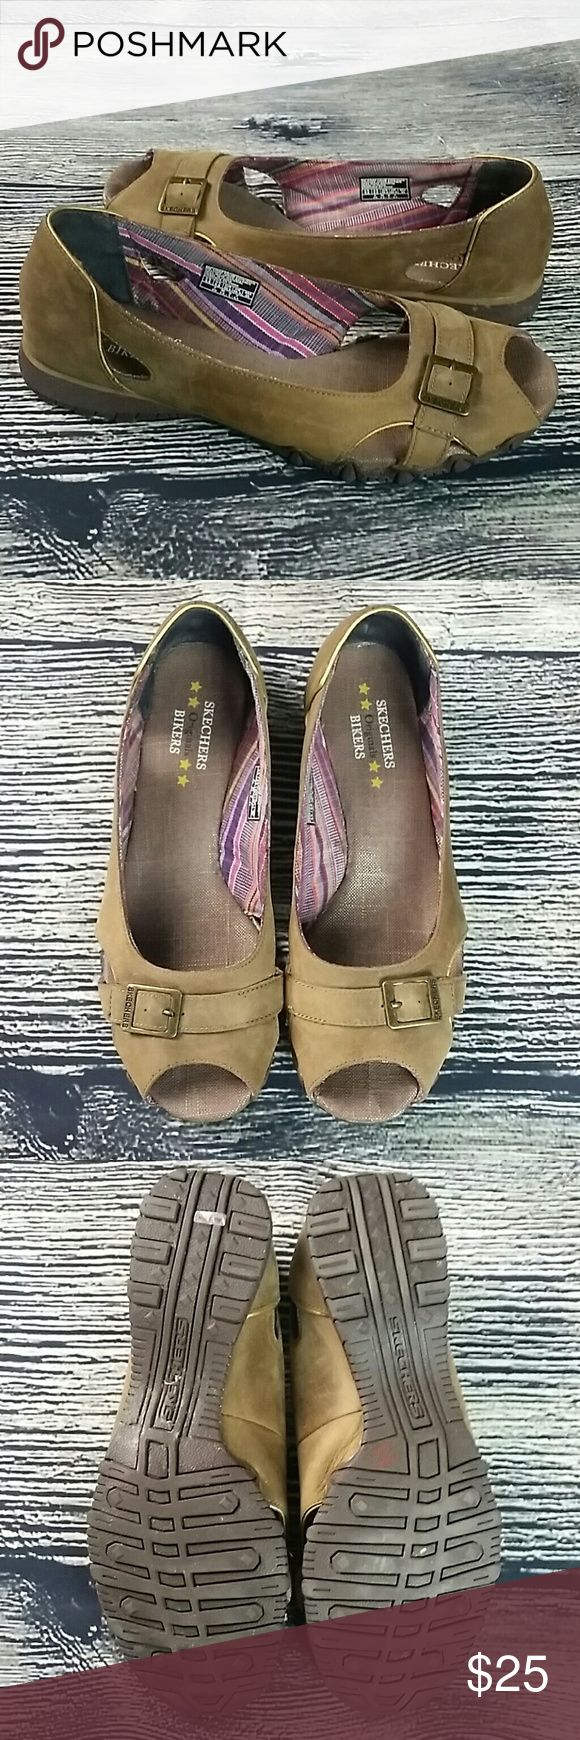 Skechers Bikers Originals brown flats Skechers Bikers Originals brown flat sandals open toe shoes  Size 9.5 Excellent condition besides on bottom of left shoe tried to get the gum off - some residue remains - should come off with some wear Skechers Shoes Flats & Loafers